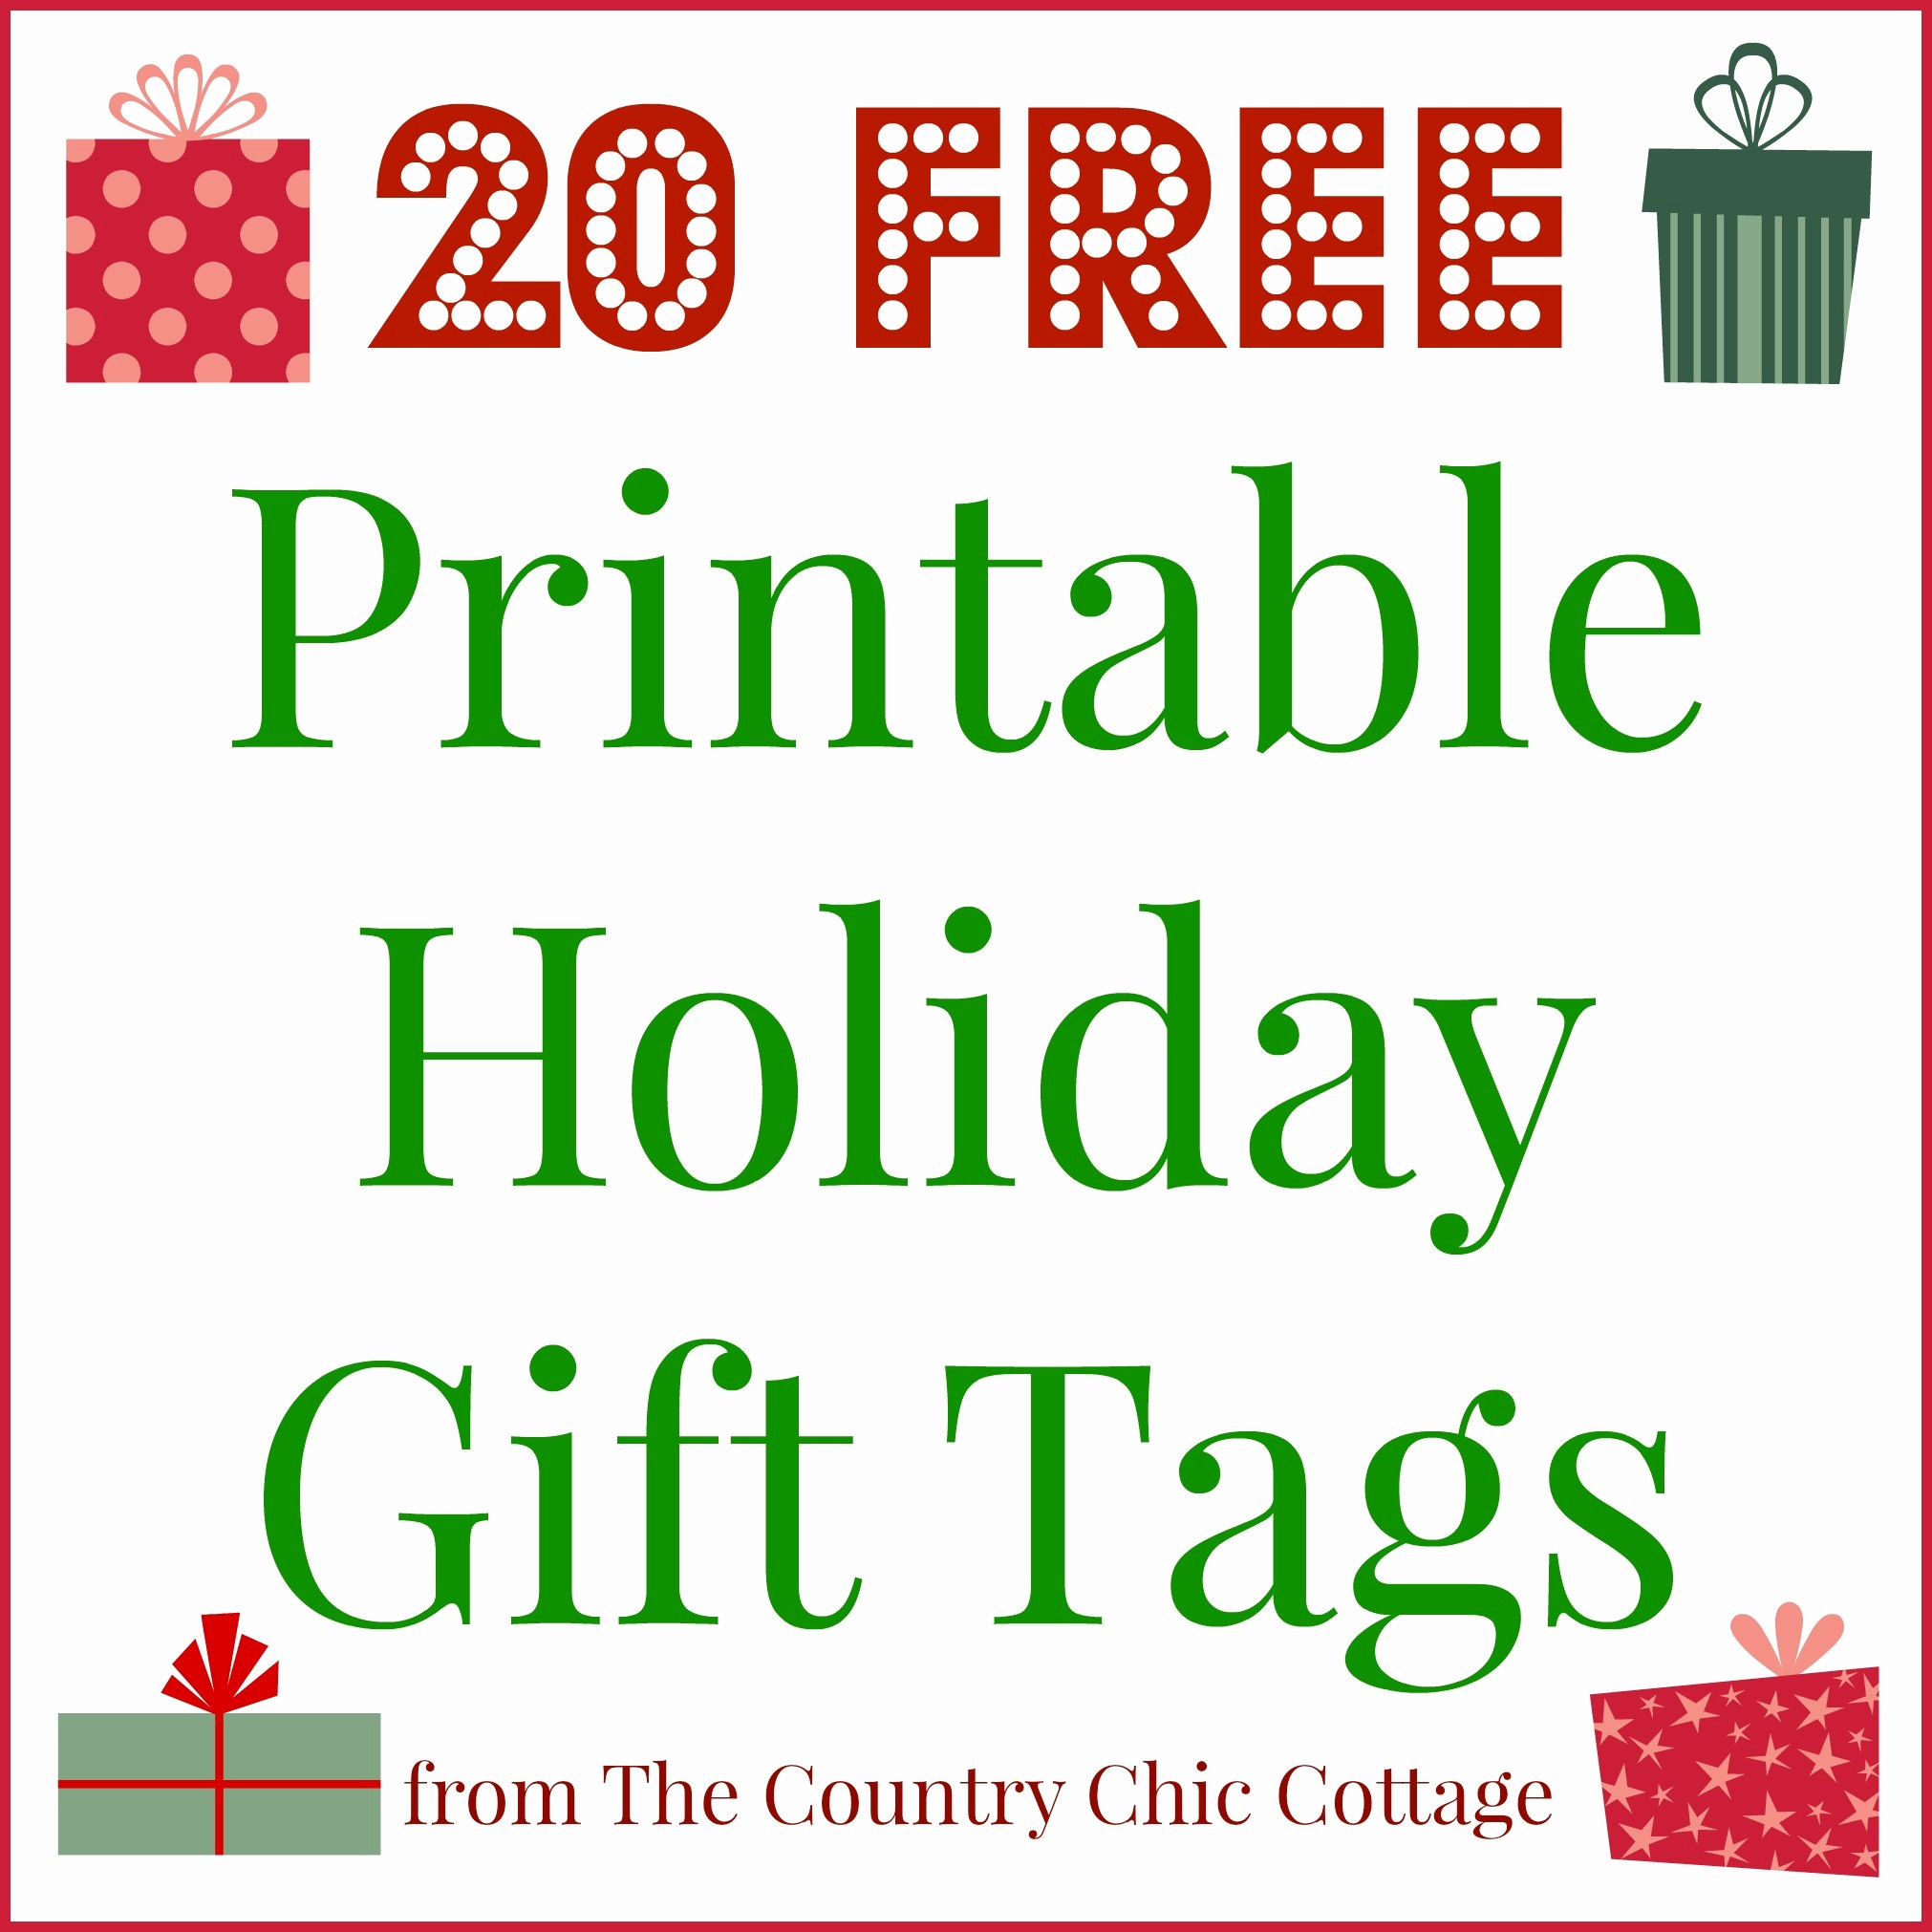 Christmas Gift Tags Template Free New 20 Printable Holiday Gift Tags for Free the Country